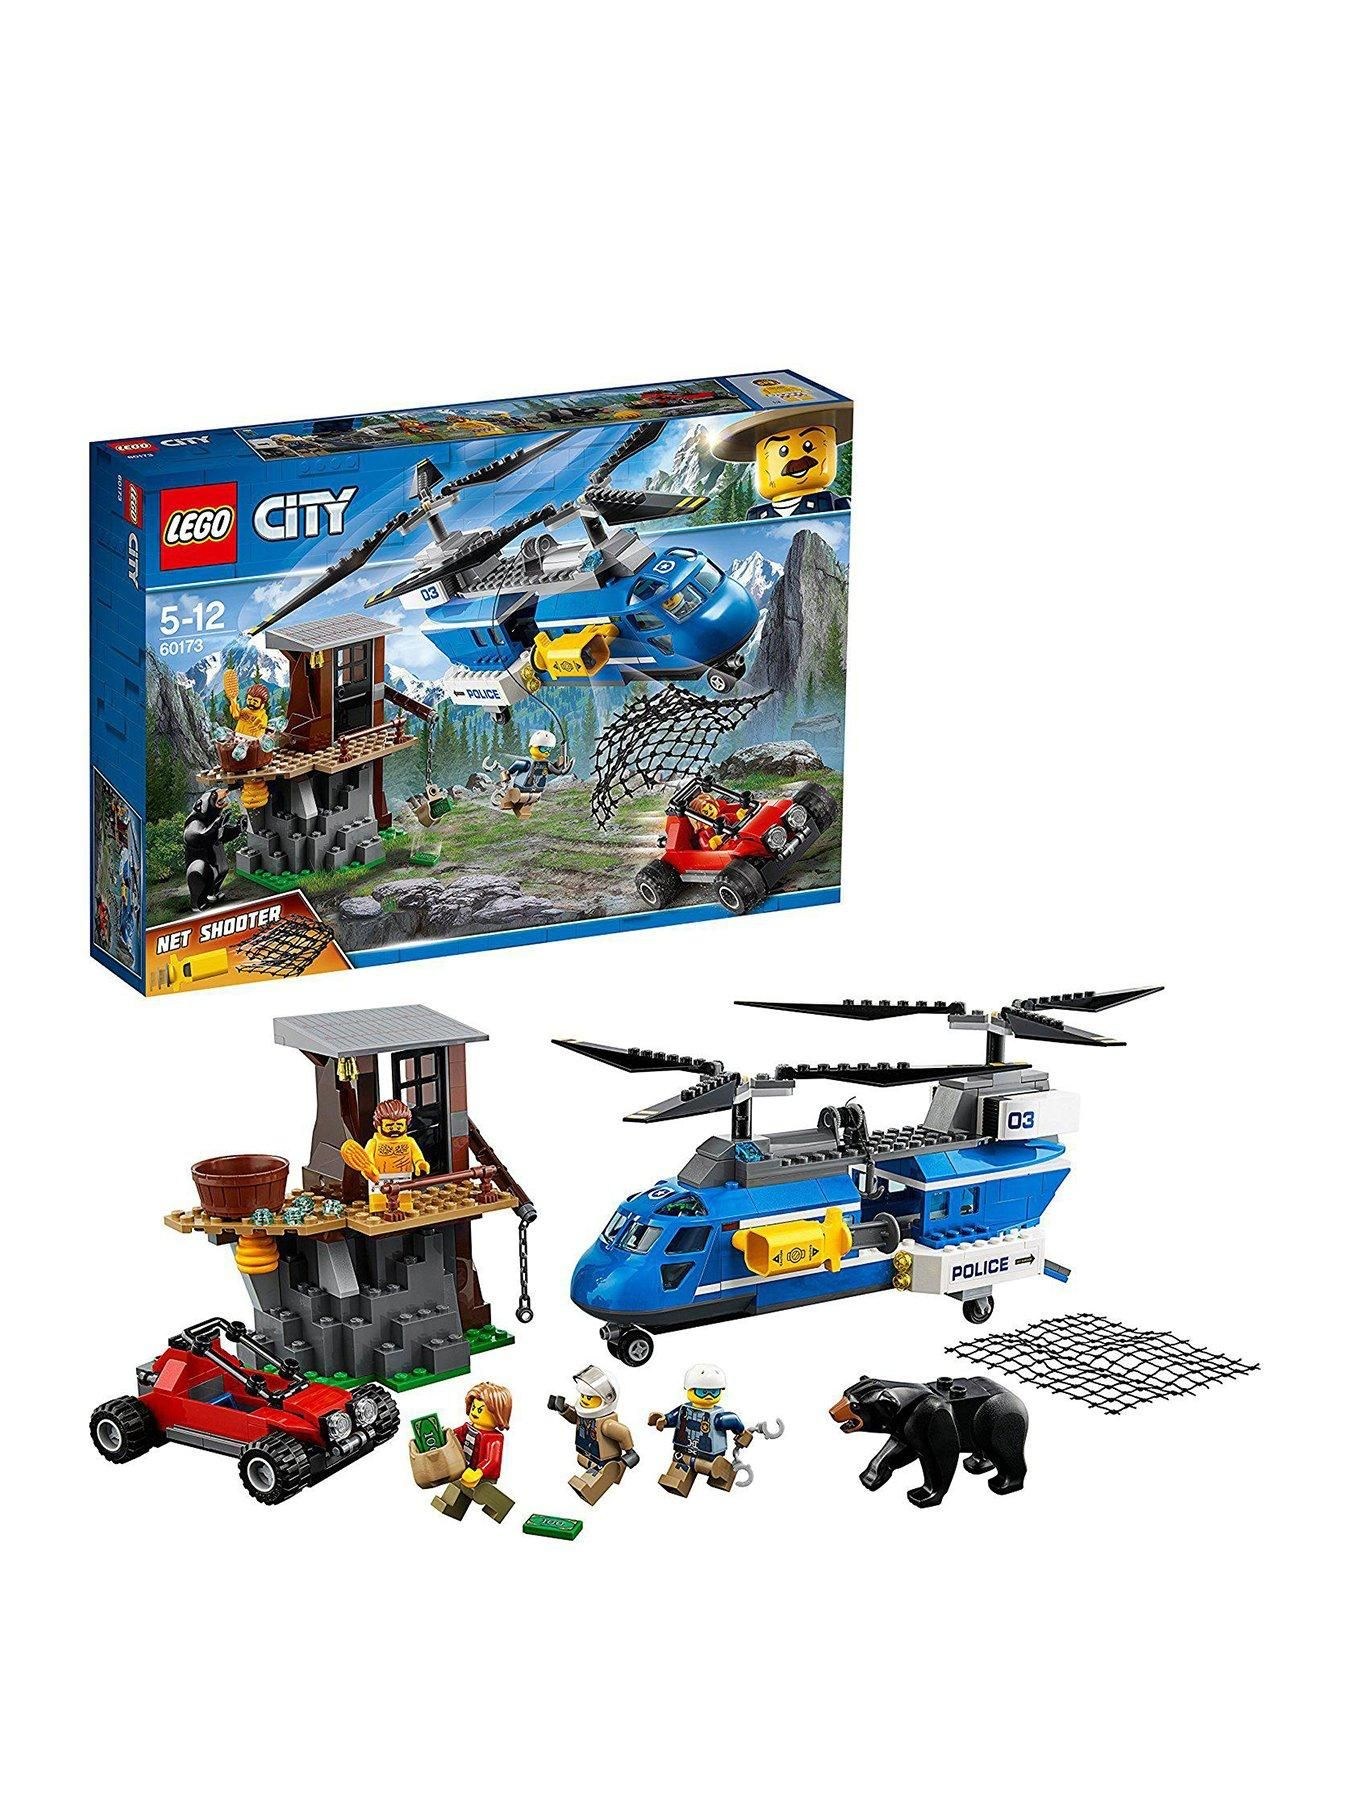 Lego City 60173 Police Mountain Arrest In One Colour Products In 2019 Lego City Joining The Police Police Story